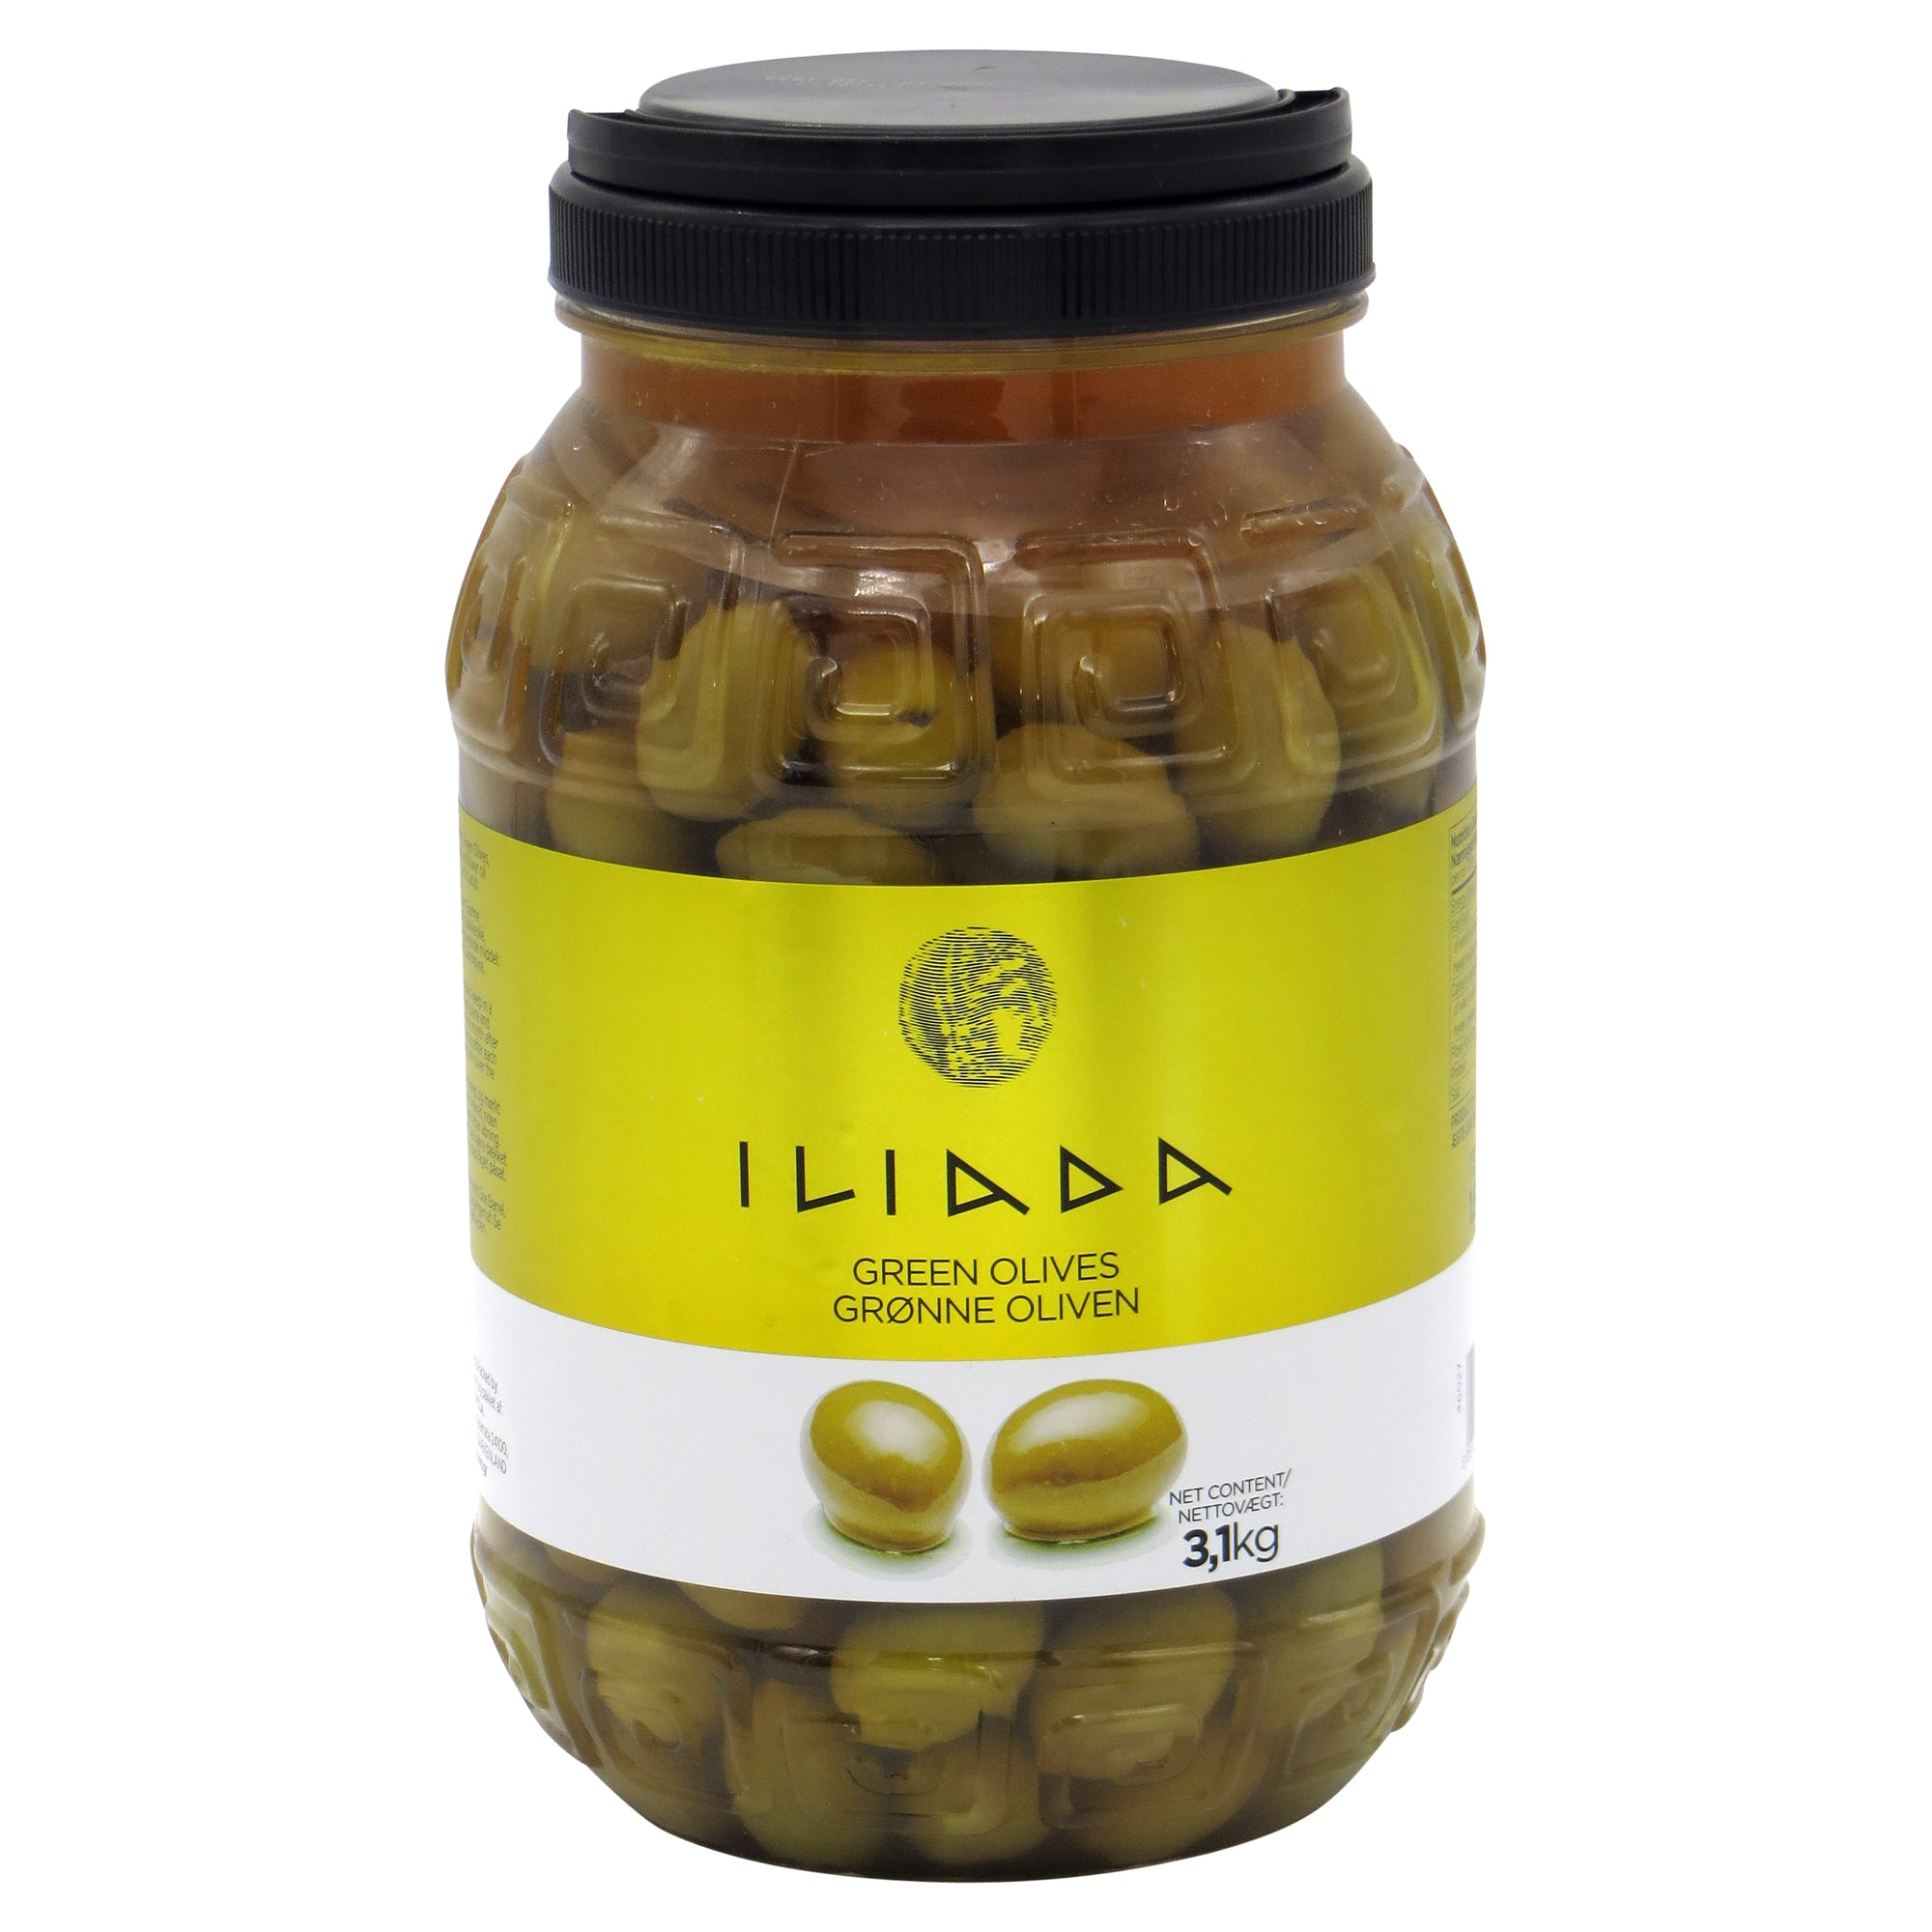 Green Whole Olives 'Iliada' 3kg (1.8kg NDW)